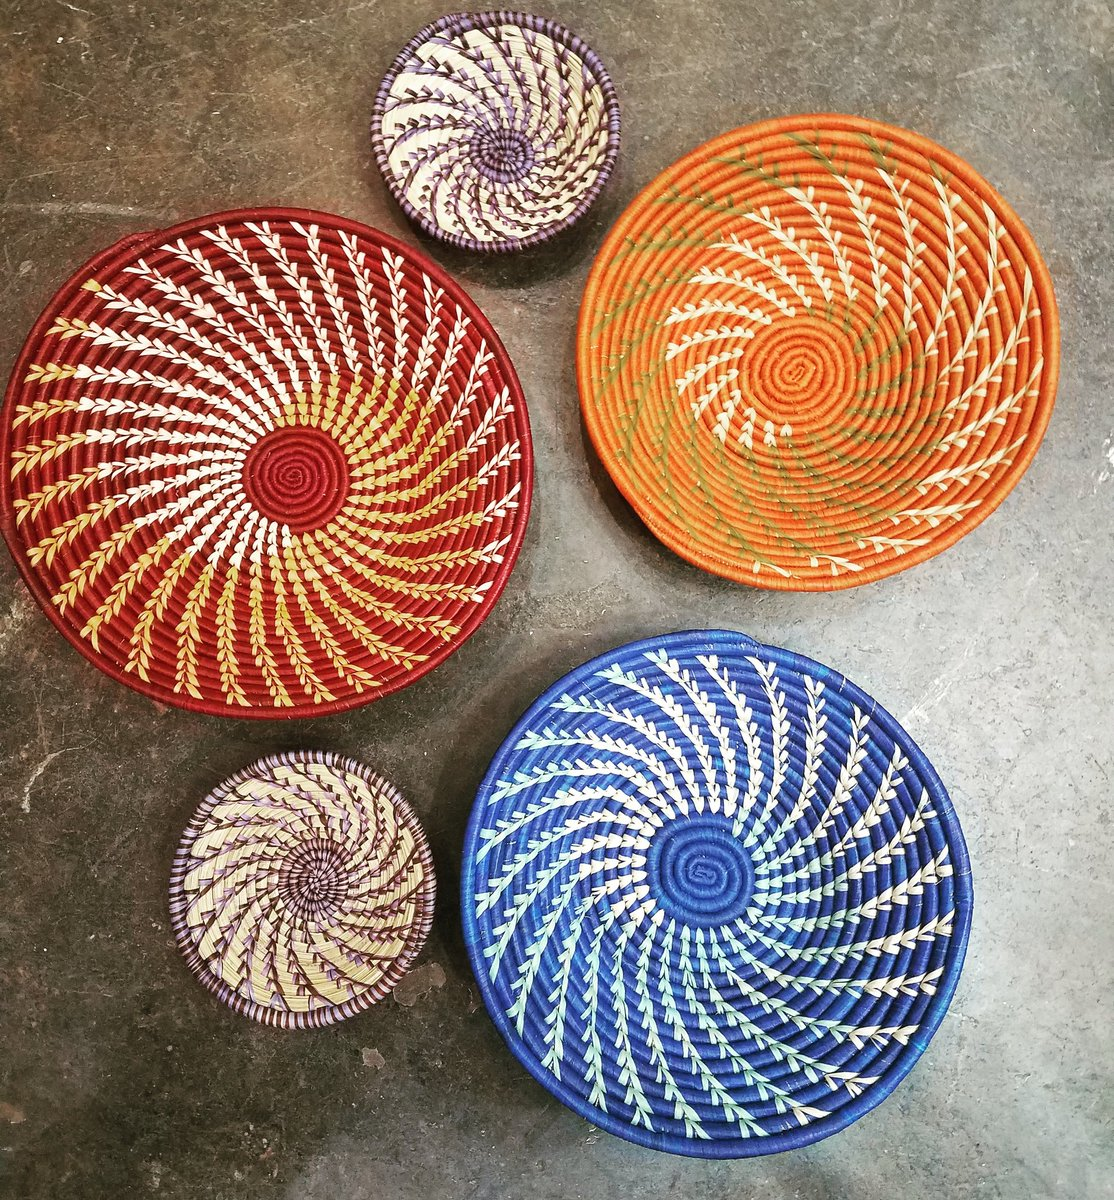 Add some color and style to make your statement. . . #style #statement #basket #handmade #makers #supportsmallbusinesses #stayhealthy #shopsmall #amarillo #bushland #6thstreet #unexpected